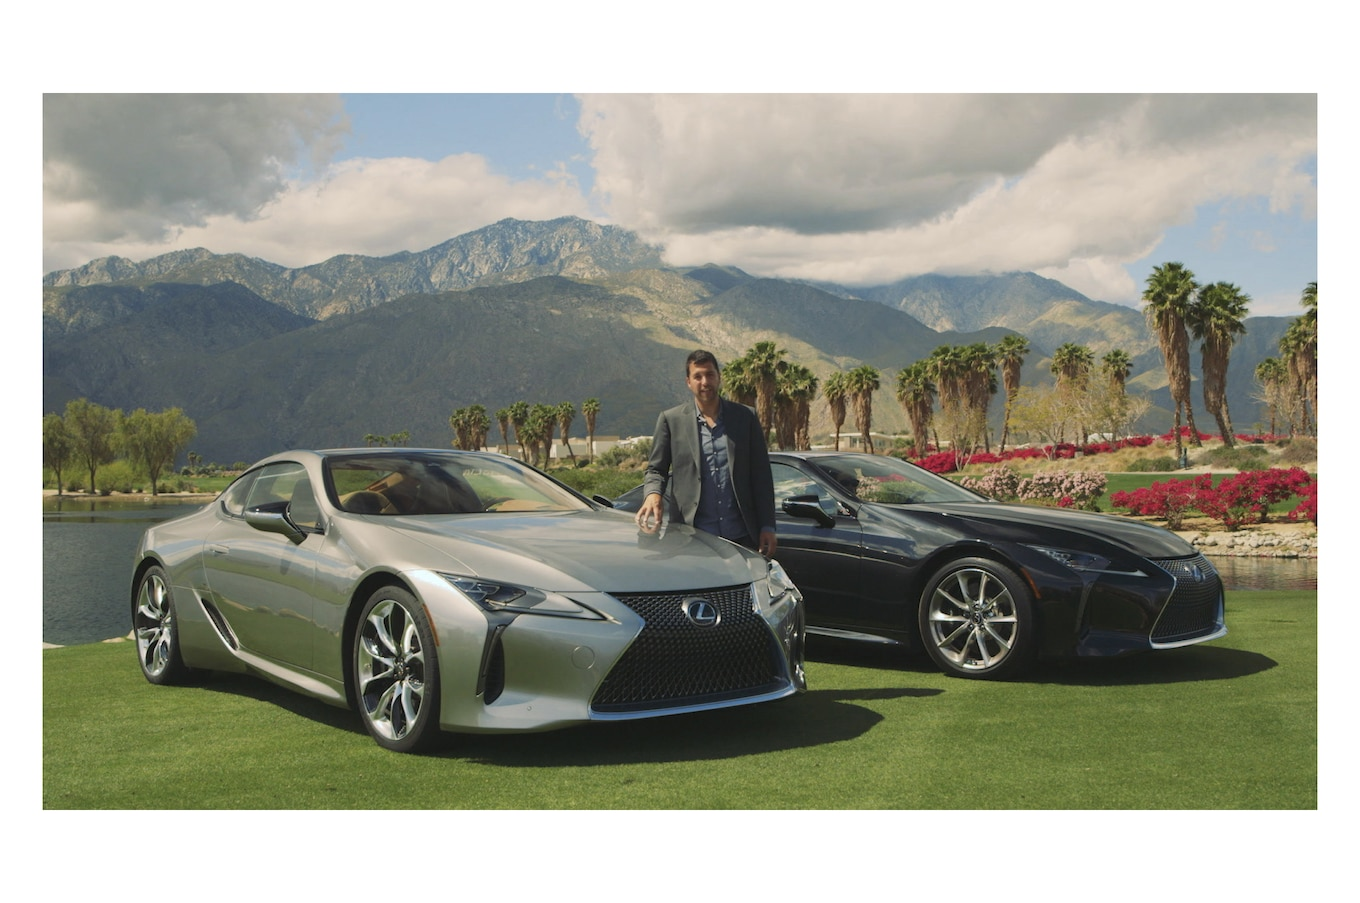 2018 Lexus LC 500 Ignition Episode is Live Now on Motor Trend